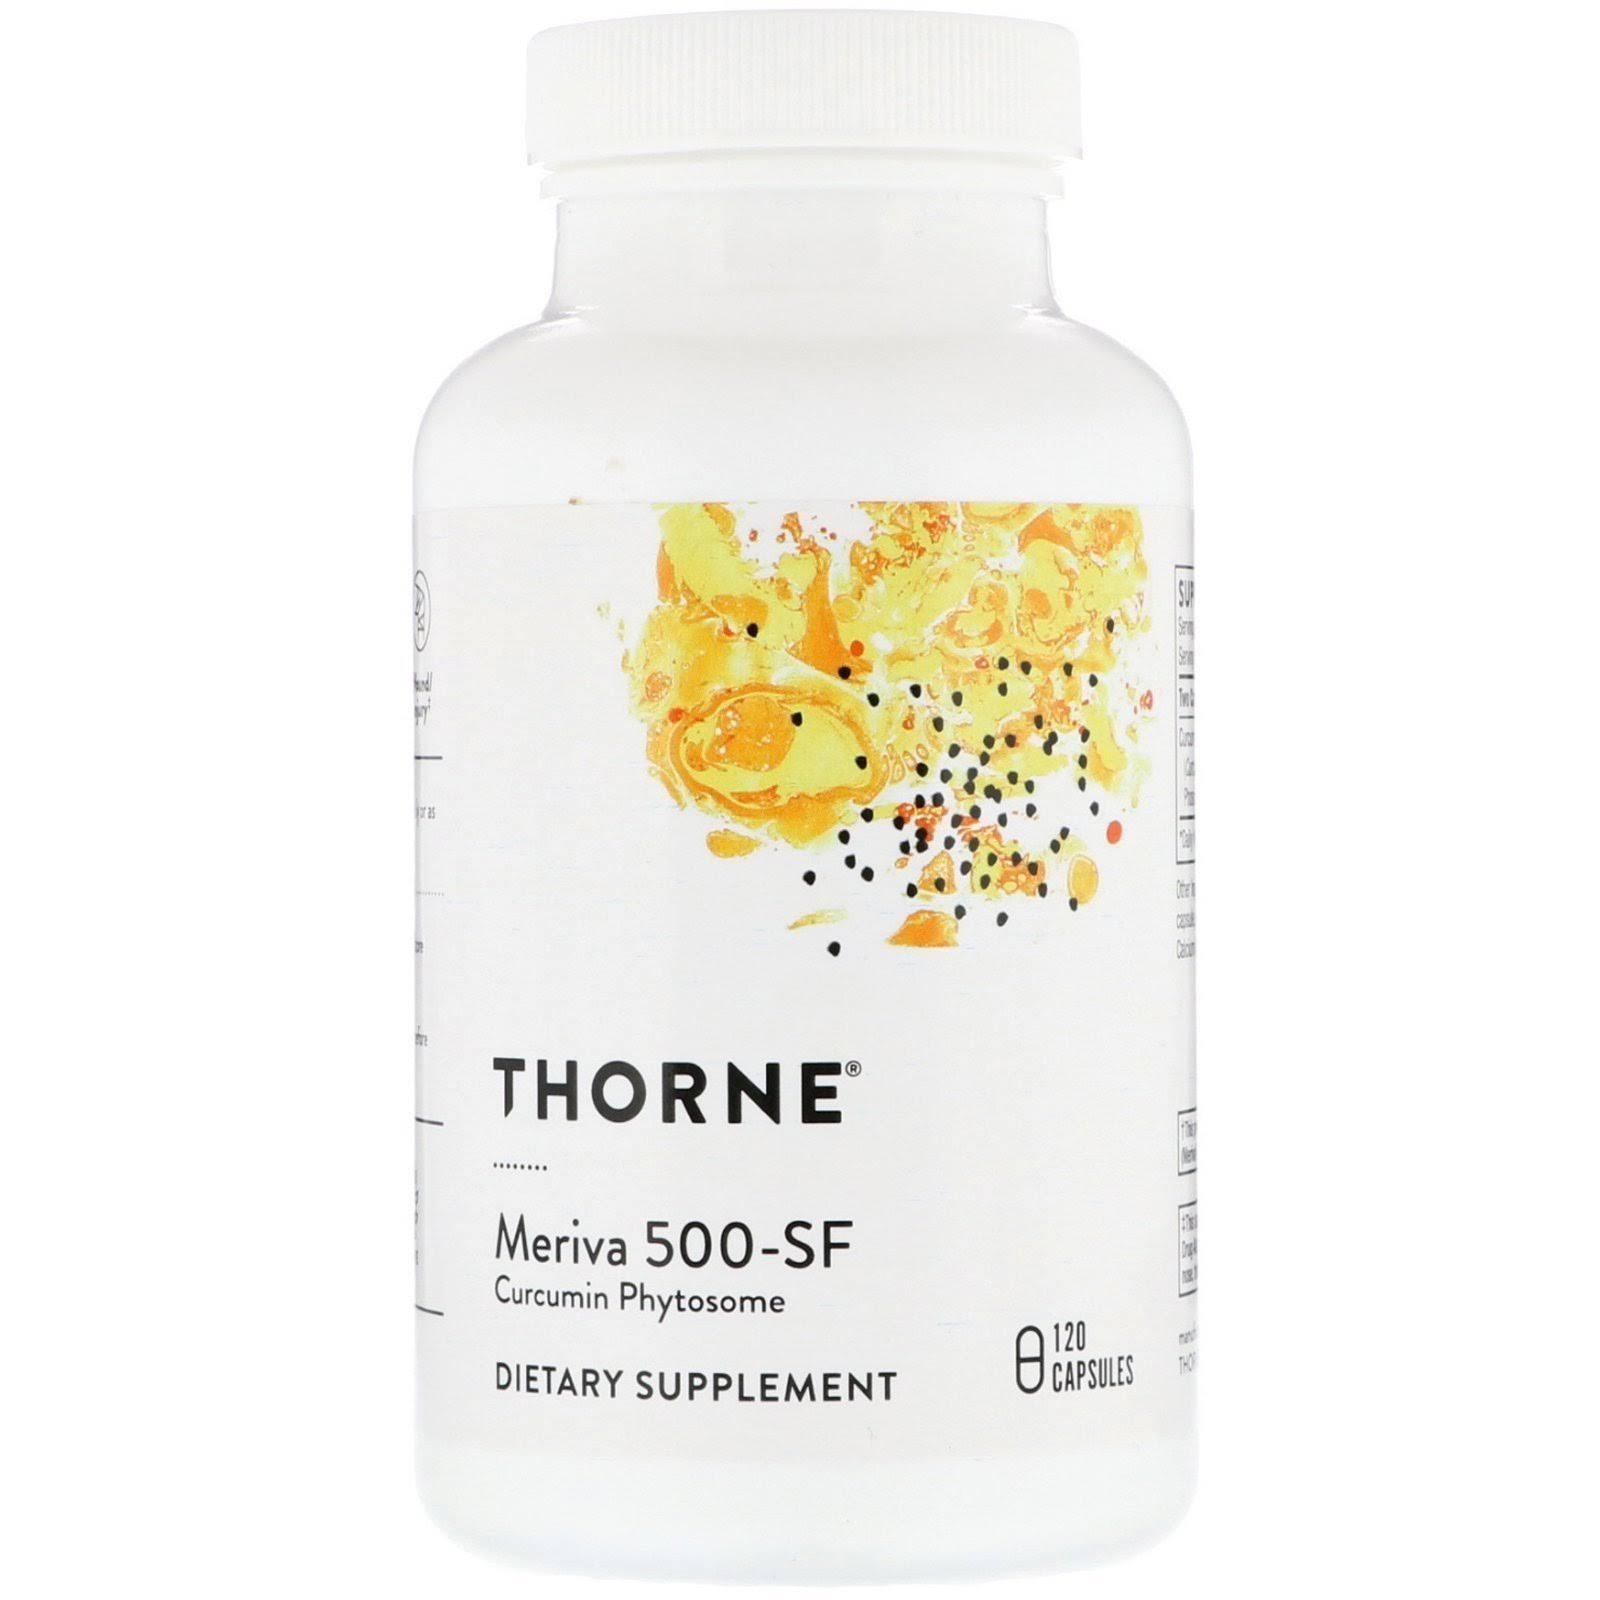 Thorne Research Meriva 500-sf Soy Free Supplement - 120ct